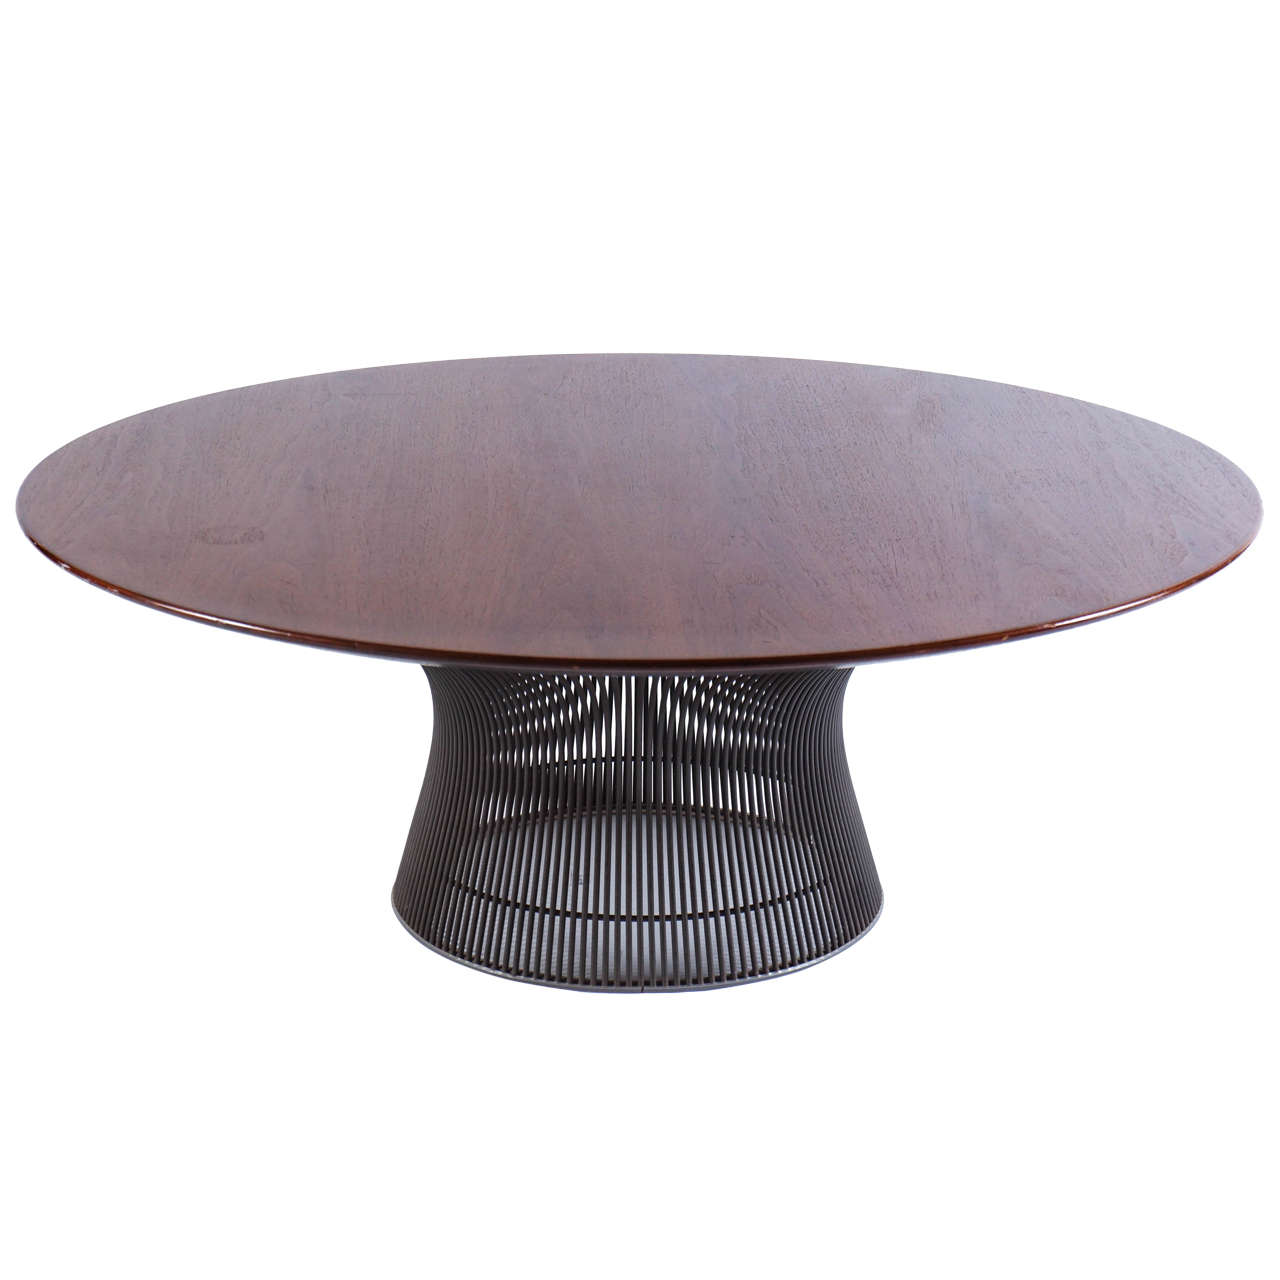 Walnut and bronze round coffee table by warren platner for knoll walnut and bronze round coffee table by warren platner for knoll 1 geotapseo Images